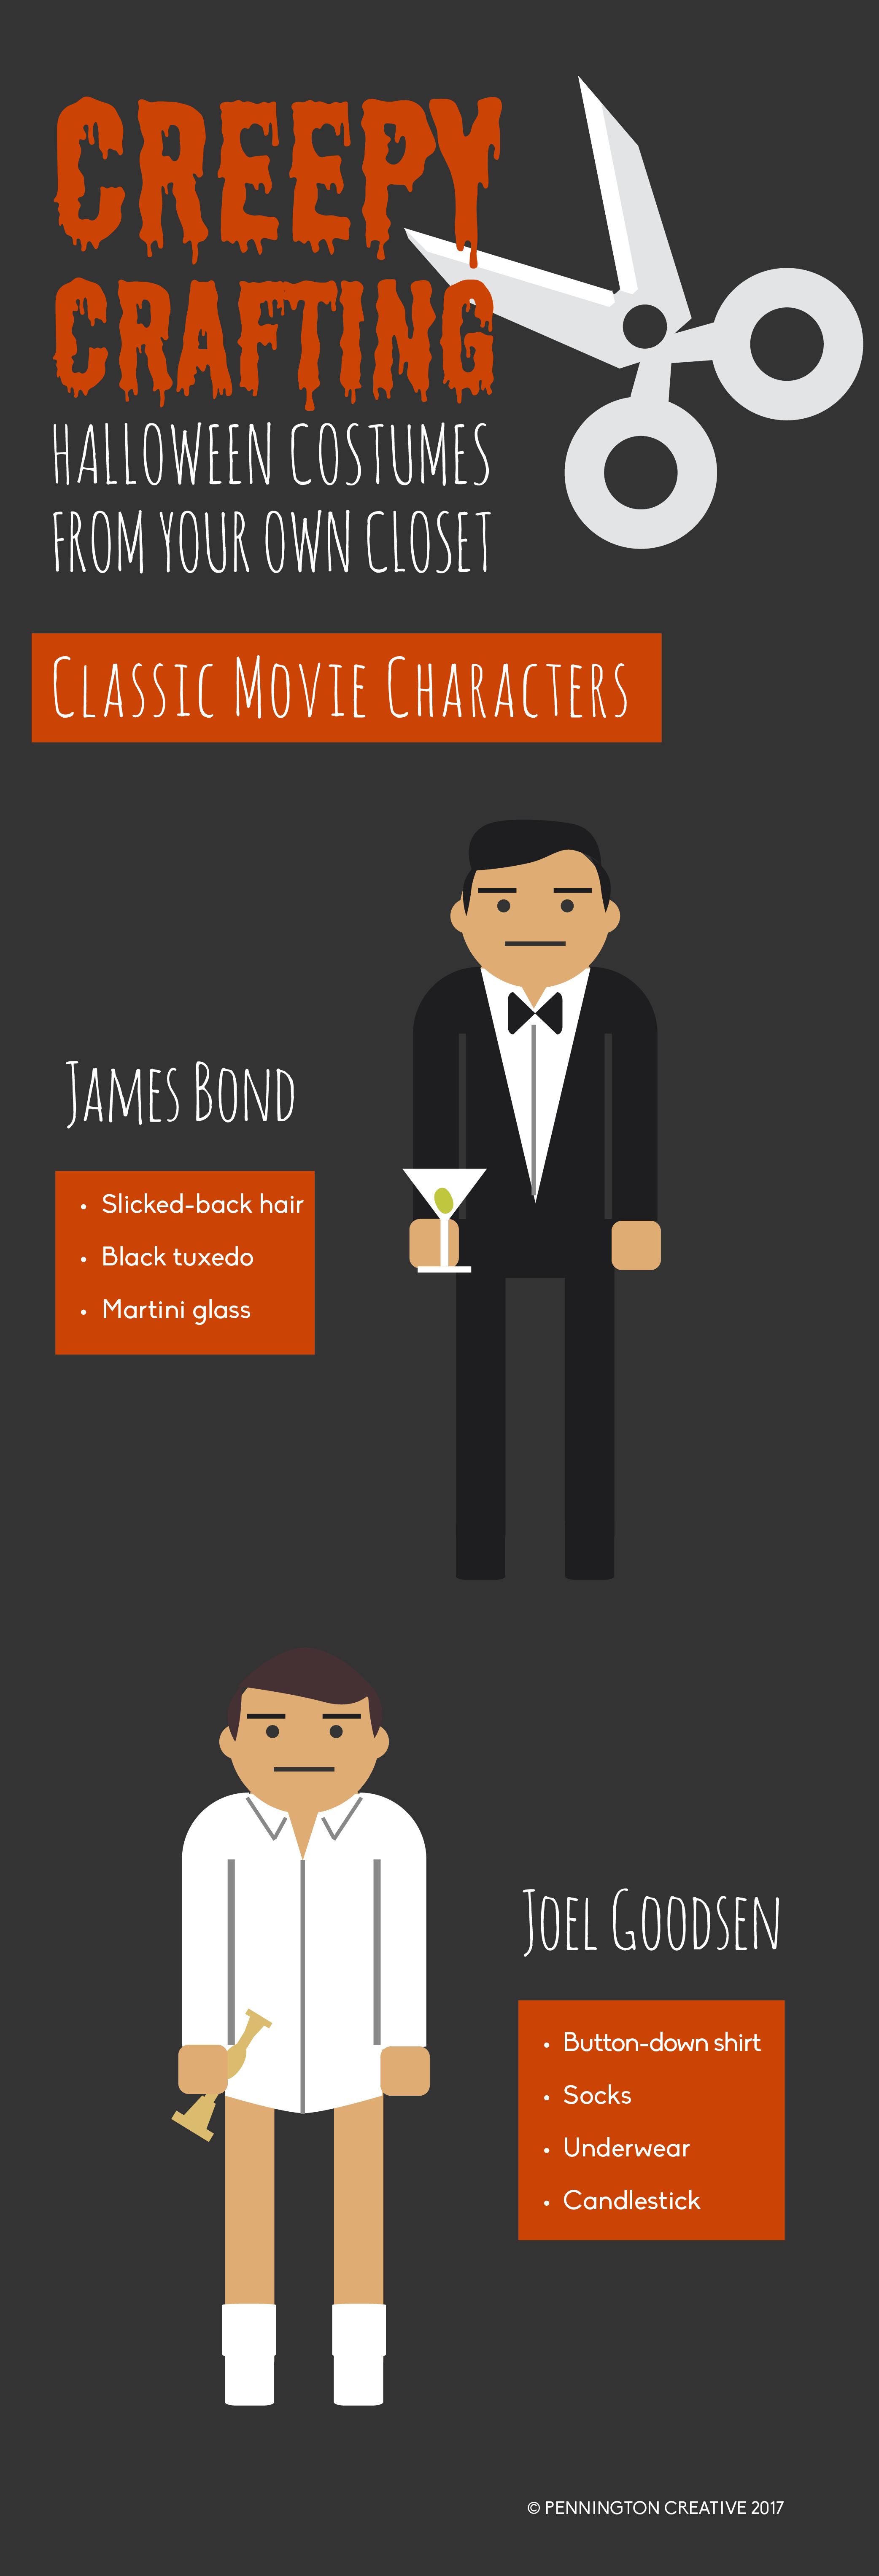 James Bond and Risky Business Halloween Costumes